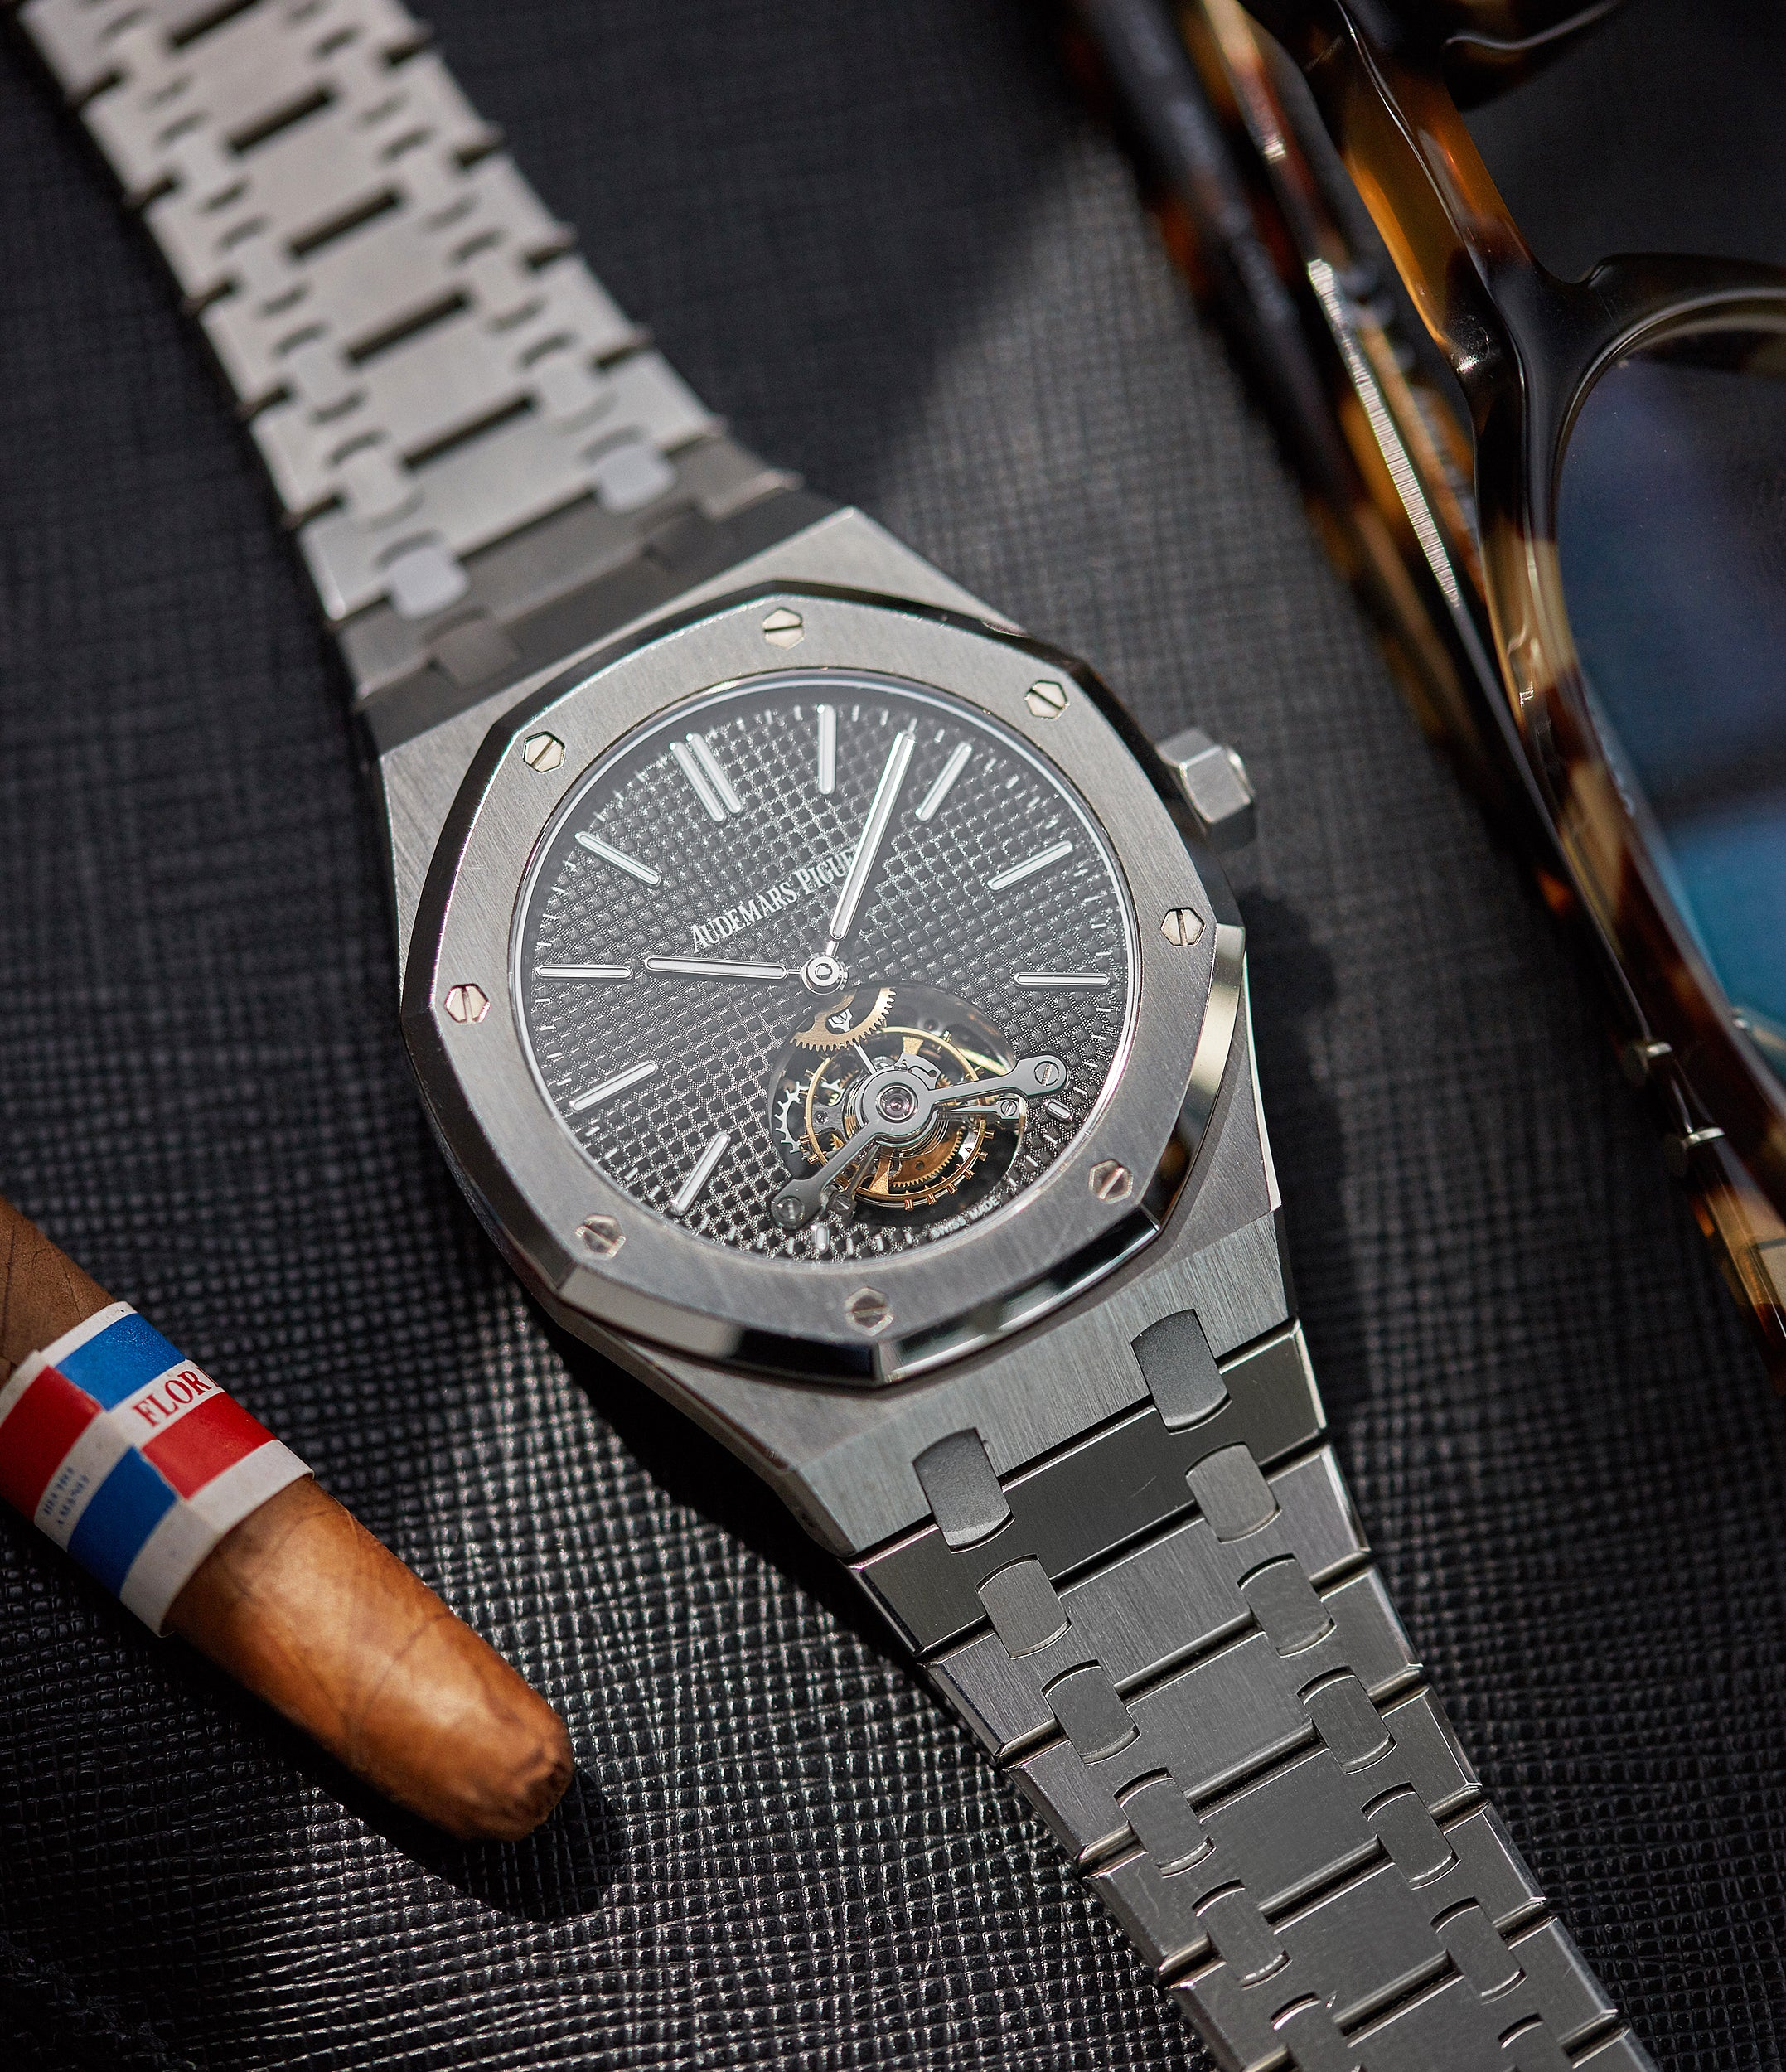 rare Audemars Piguet Royal Oak Tourbillon extra-slim Special Edition Japanese steel pre-owned watch for sale online at A Collected Man London UK specialist of rare watches